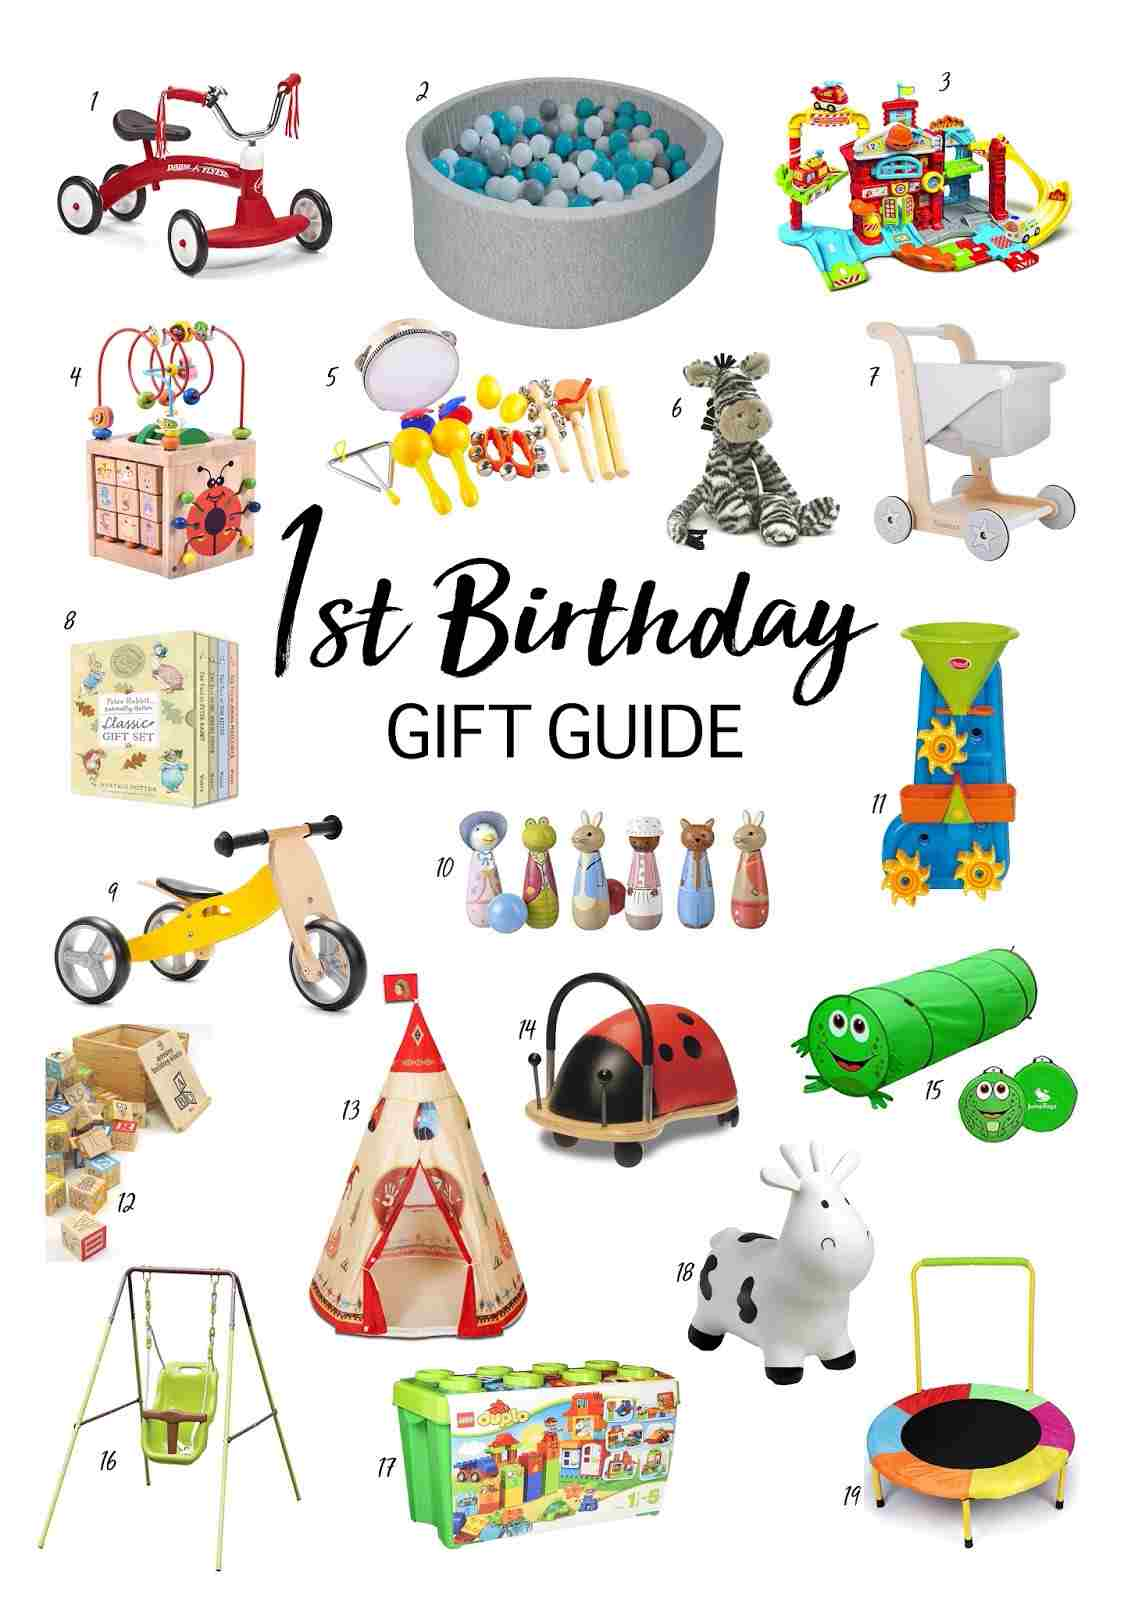 Gift guide: Ideas for 1st birthday presents